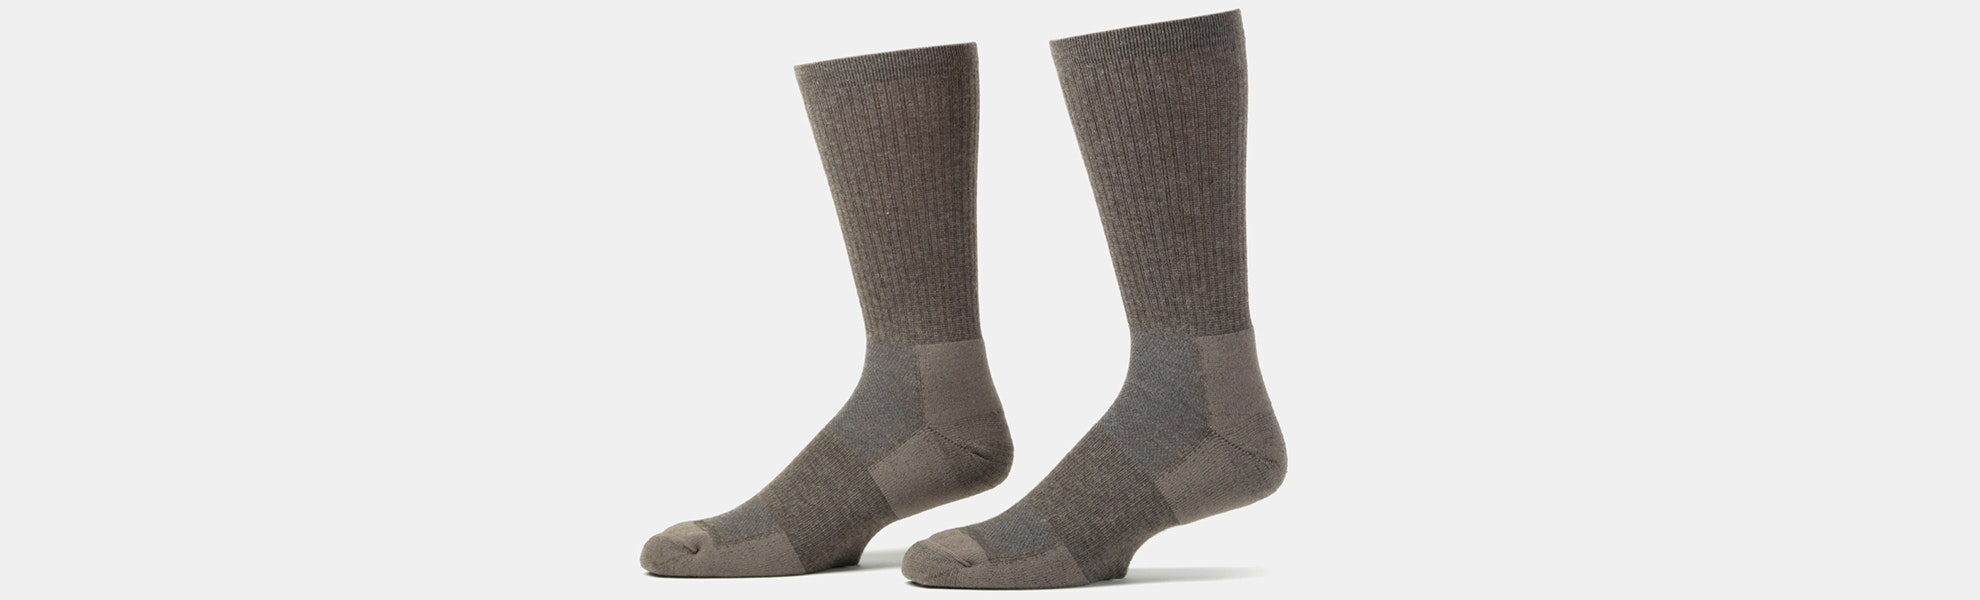 Peak to Plateau Yak Wool Trail Crew Socks